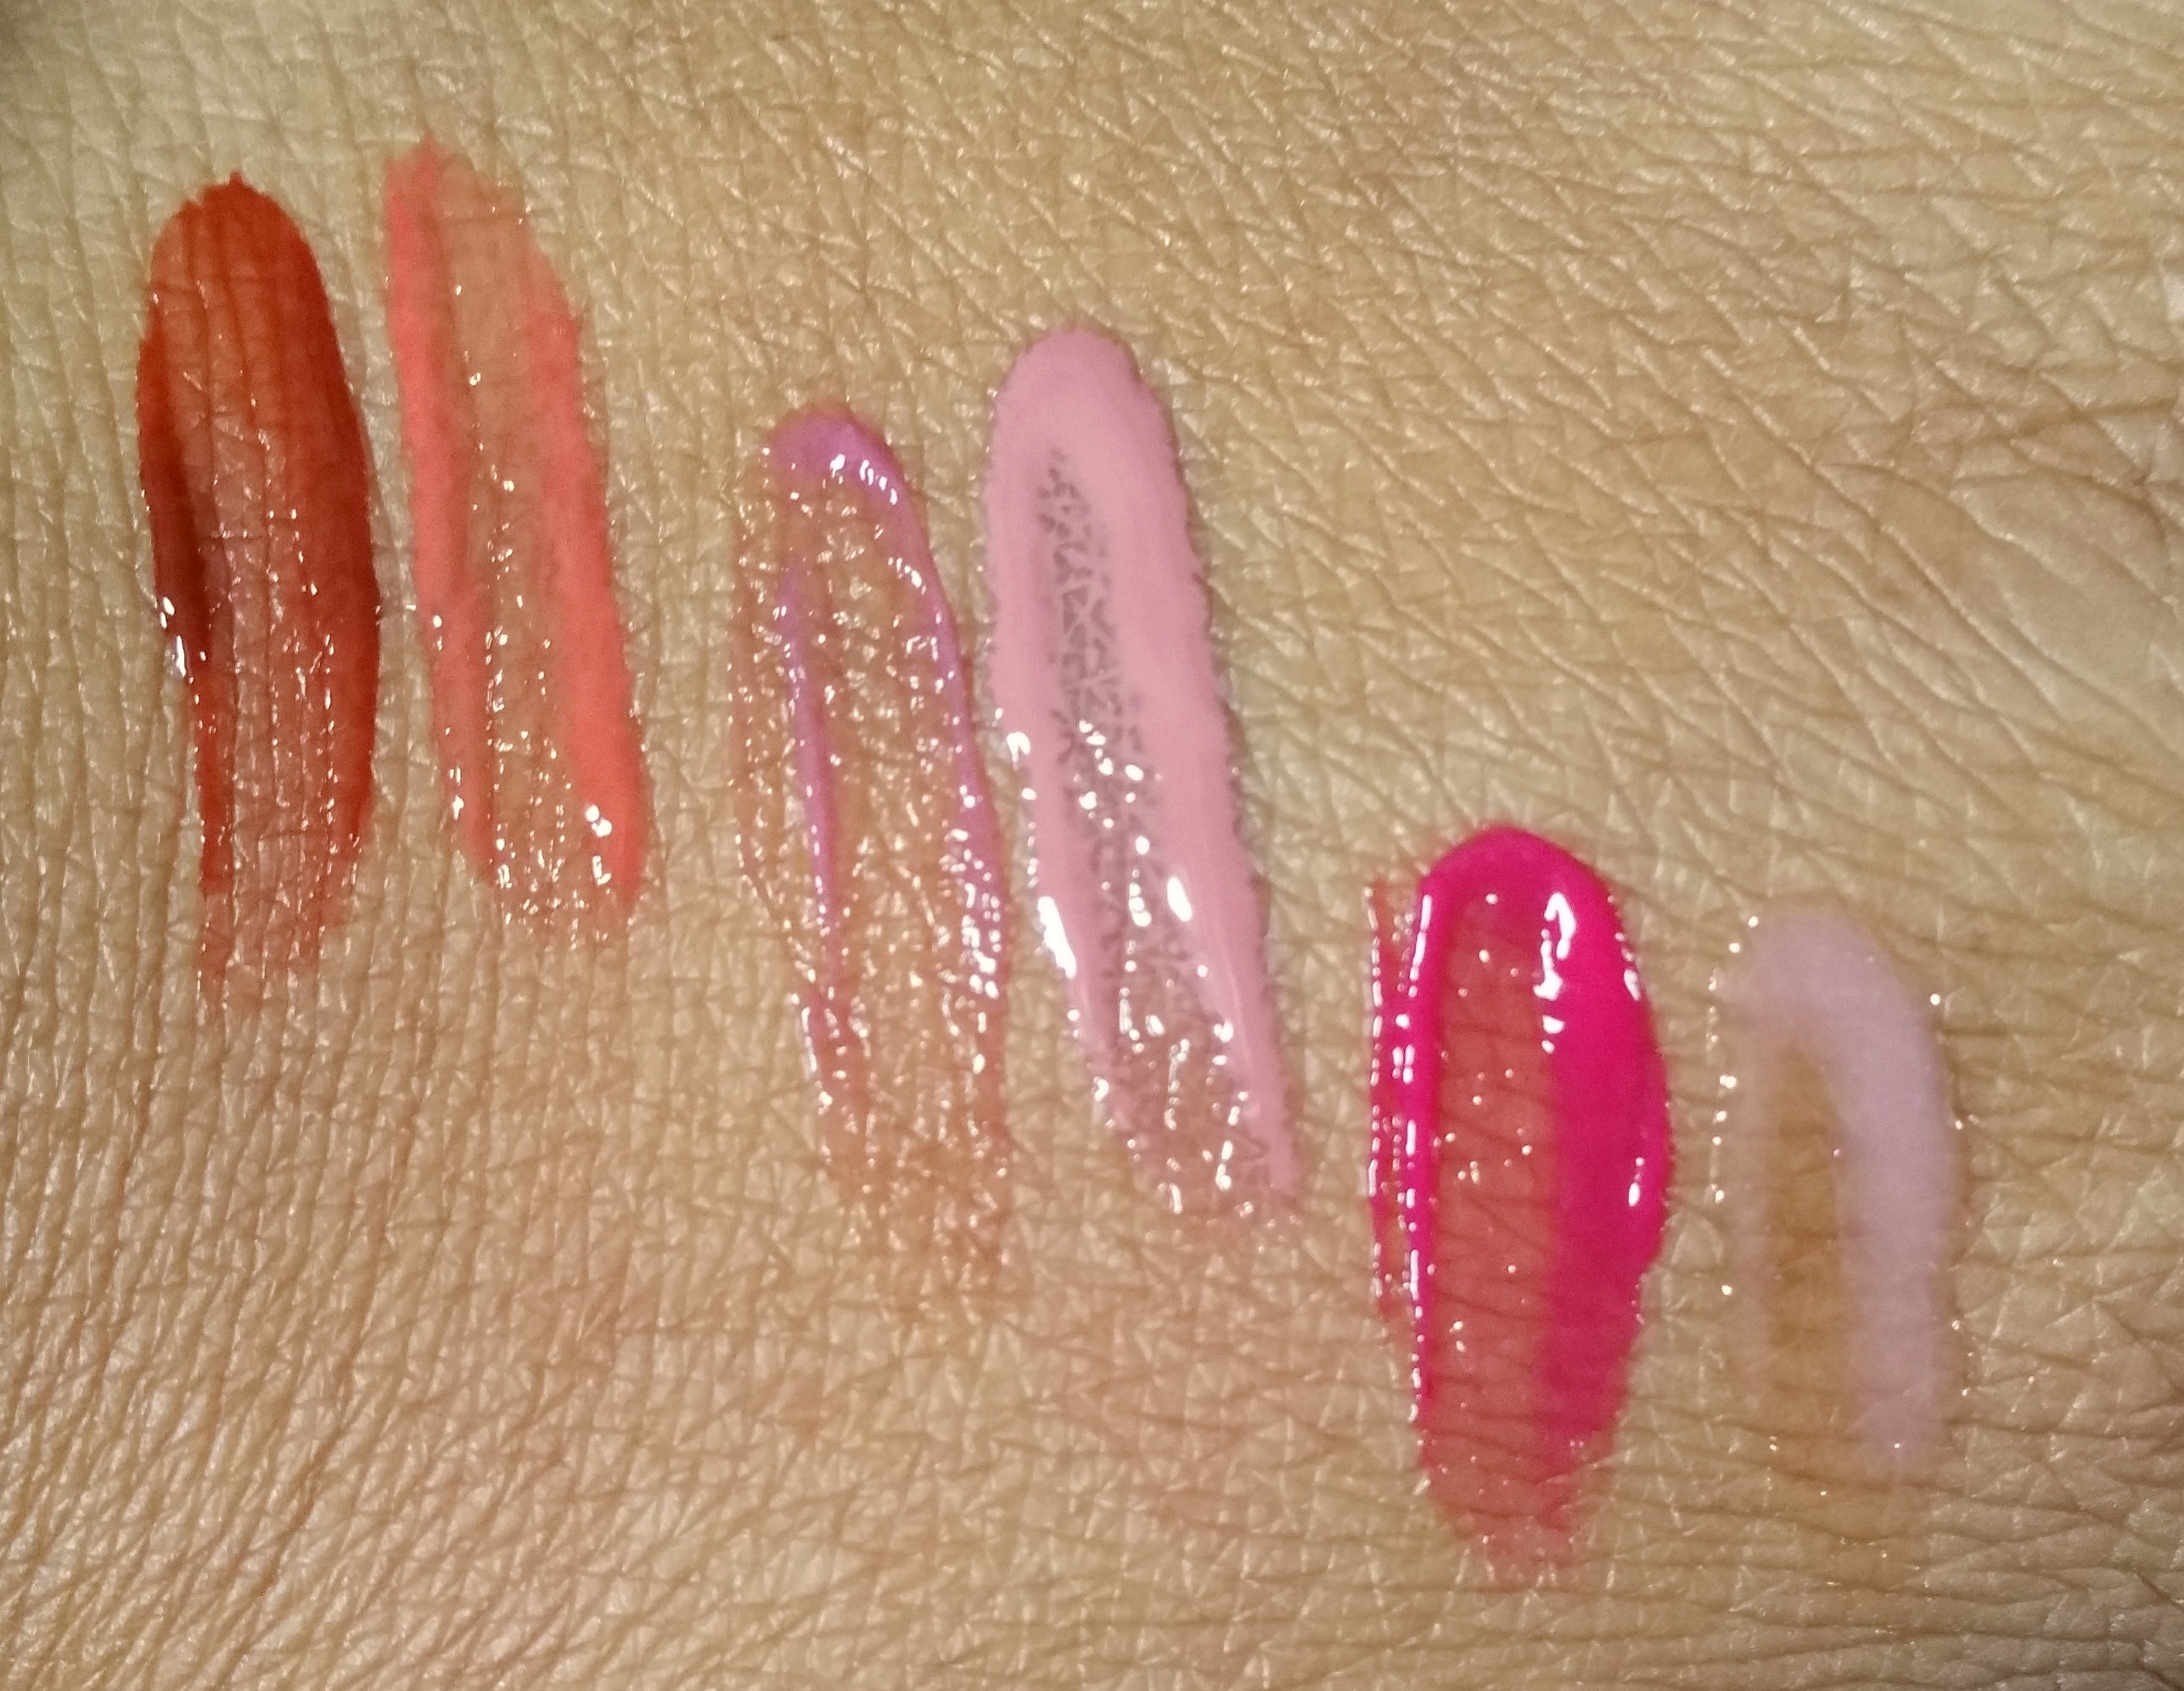 Pixi Beauty, Pixi, beauty, makeup, pixi beauty makeup, GetTint & SilkGloss, lip tint, lip gloss, cheek gel, cheek tint, swatches, product review, makeup swatches, summer makeup, lips, cheeks, affordable makeup, drugstore makeup,